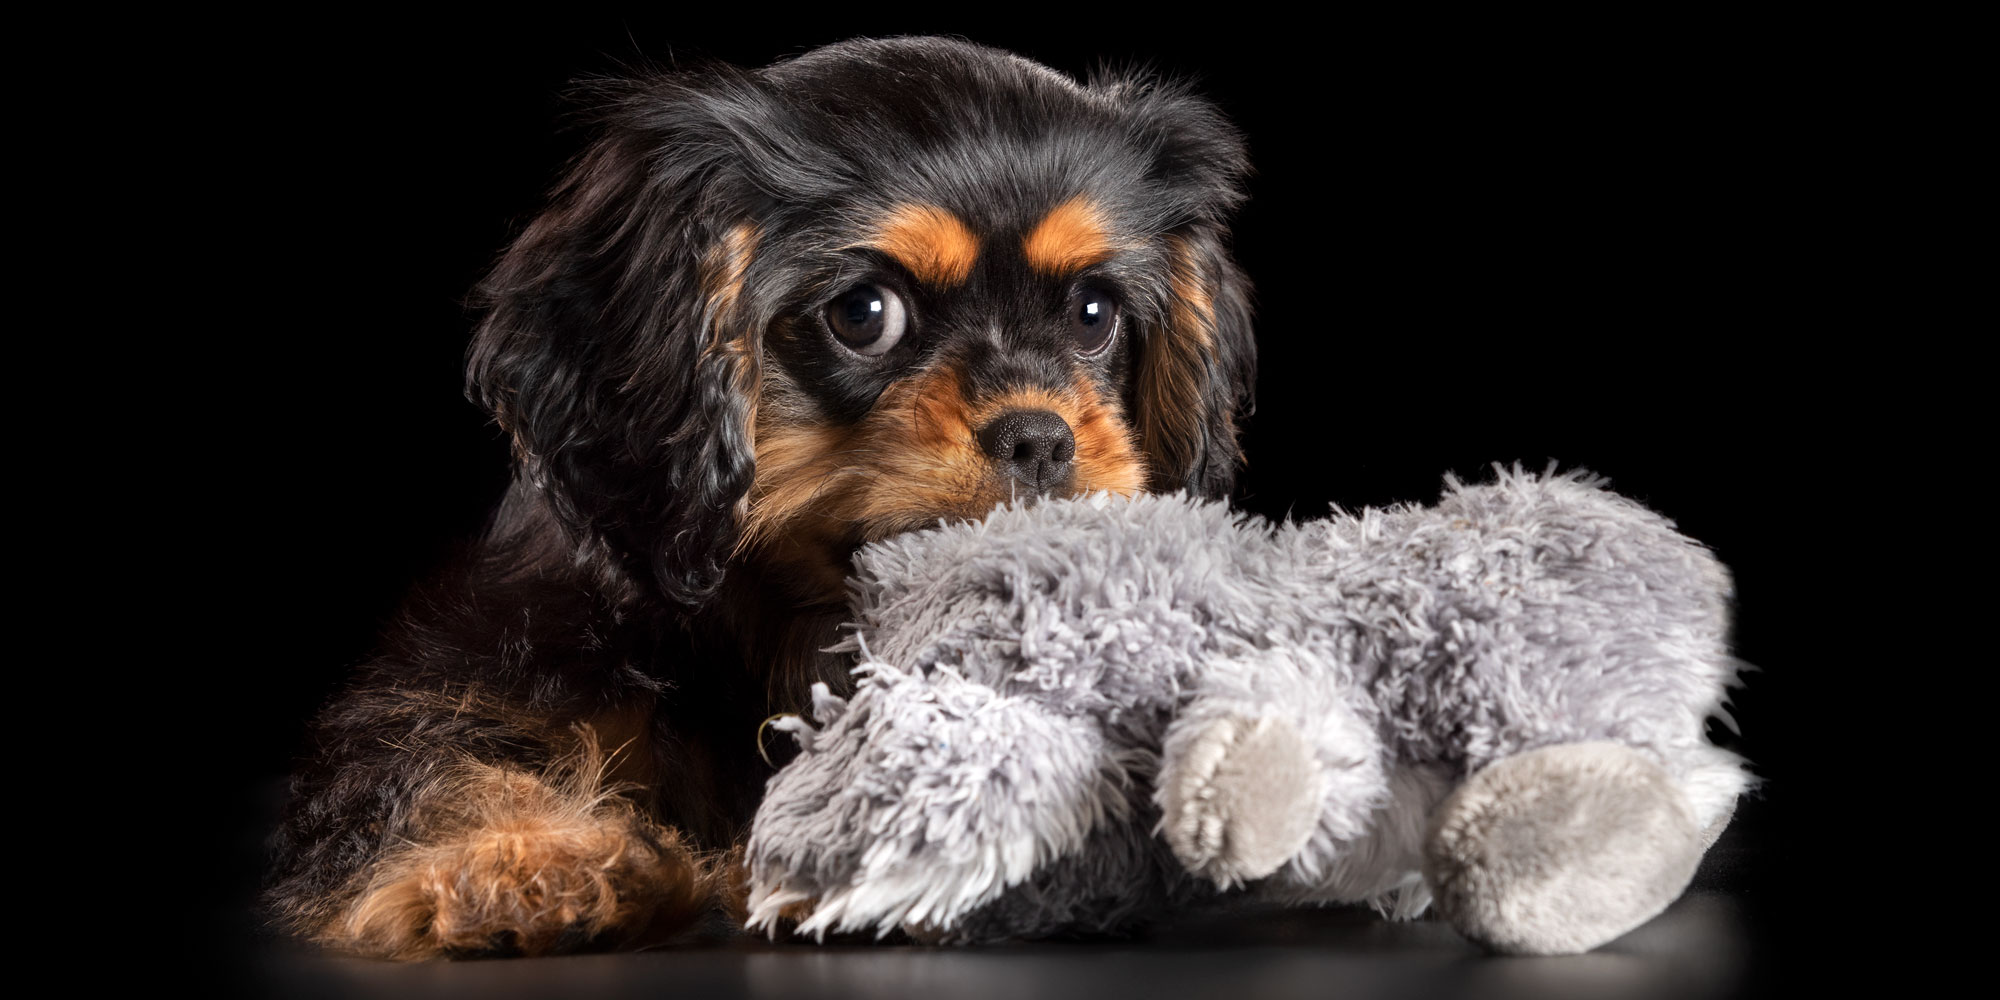 sweet faced cavvy puppy chewing on toy